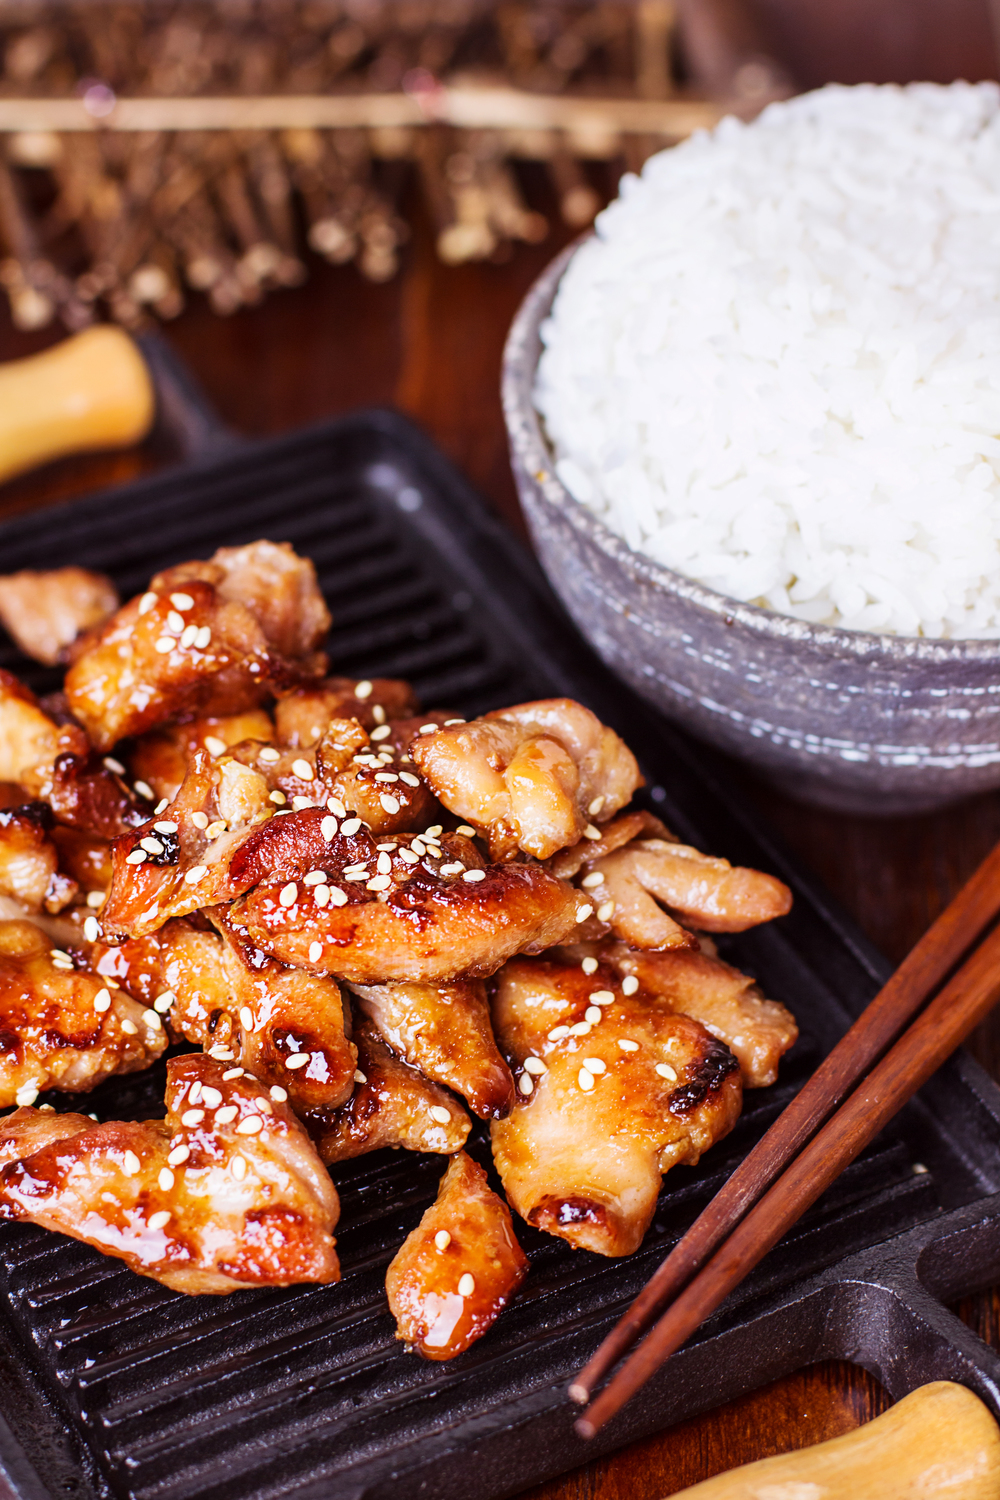 Teriyaki Chicken (ver).jpg